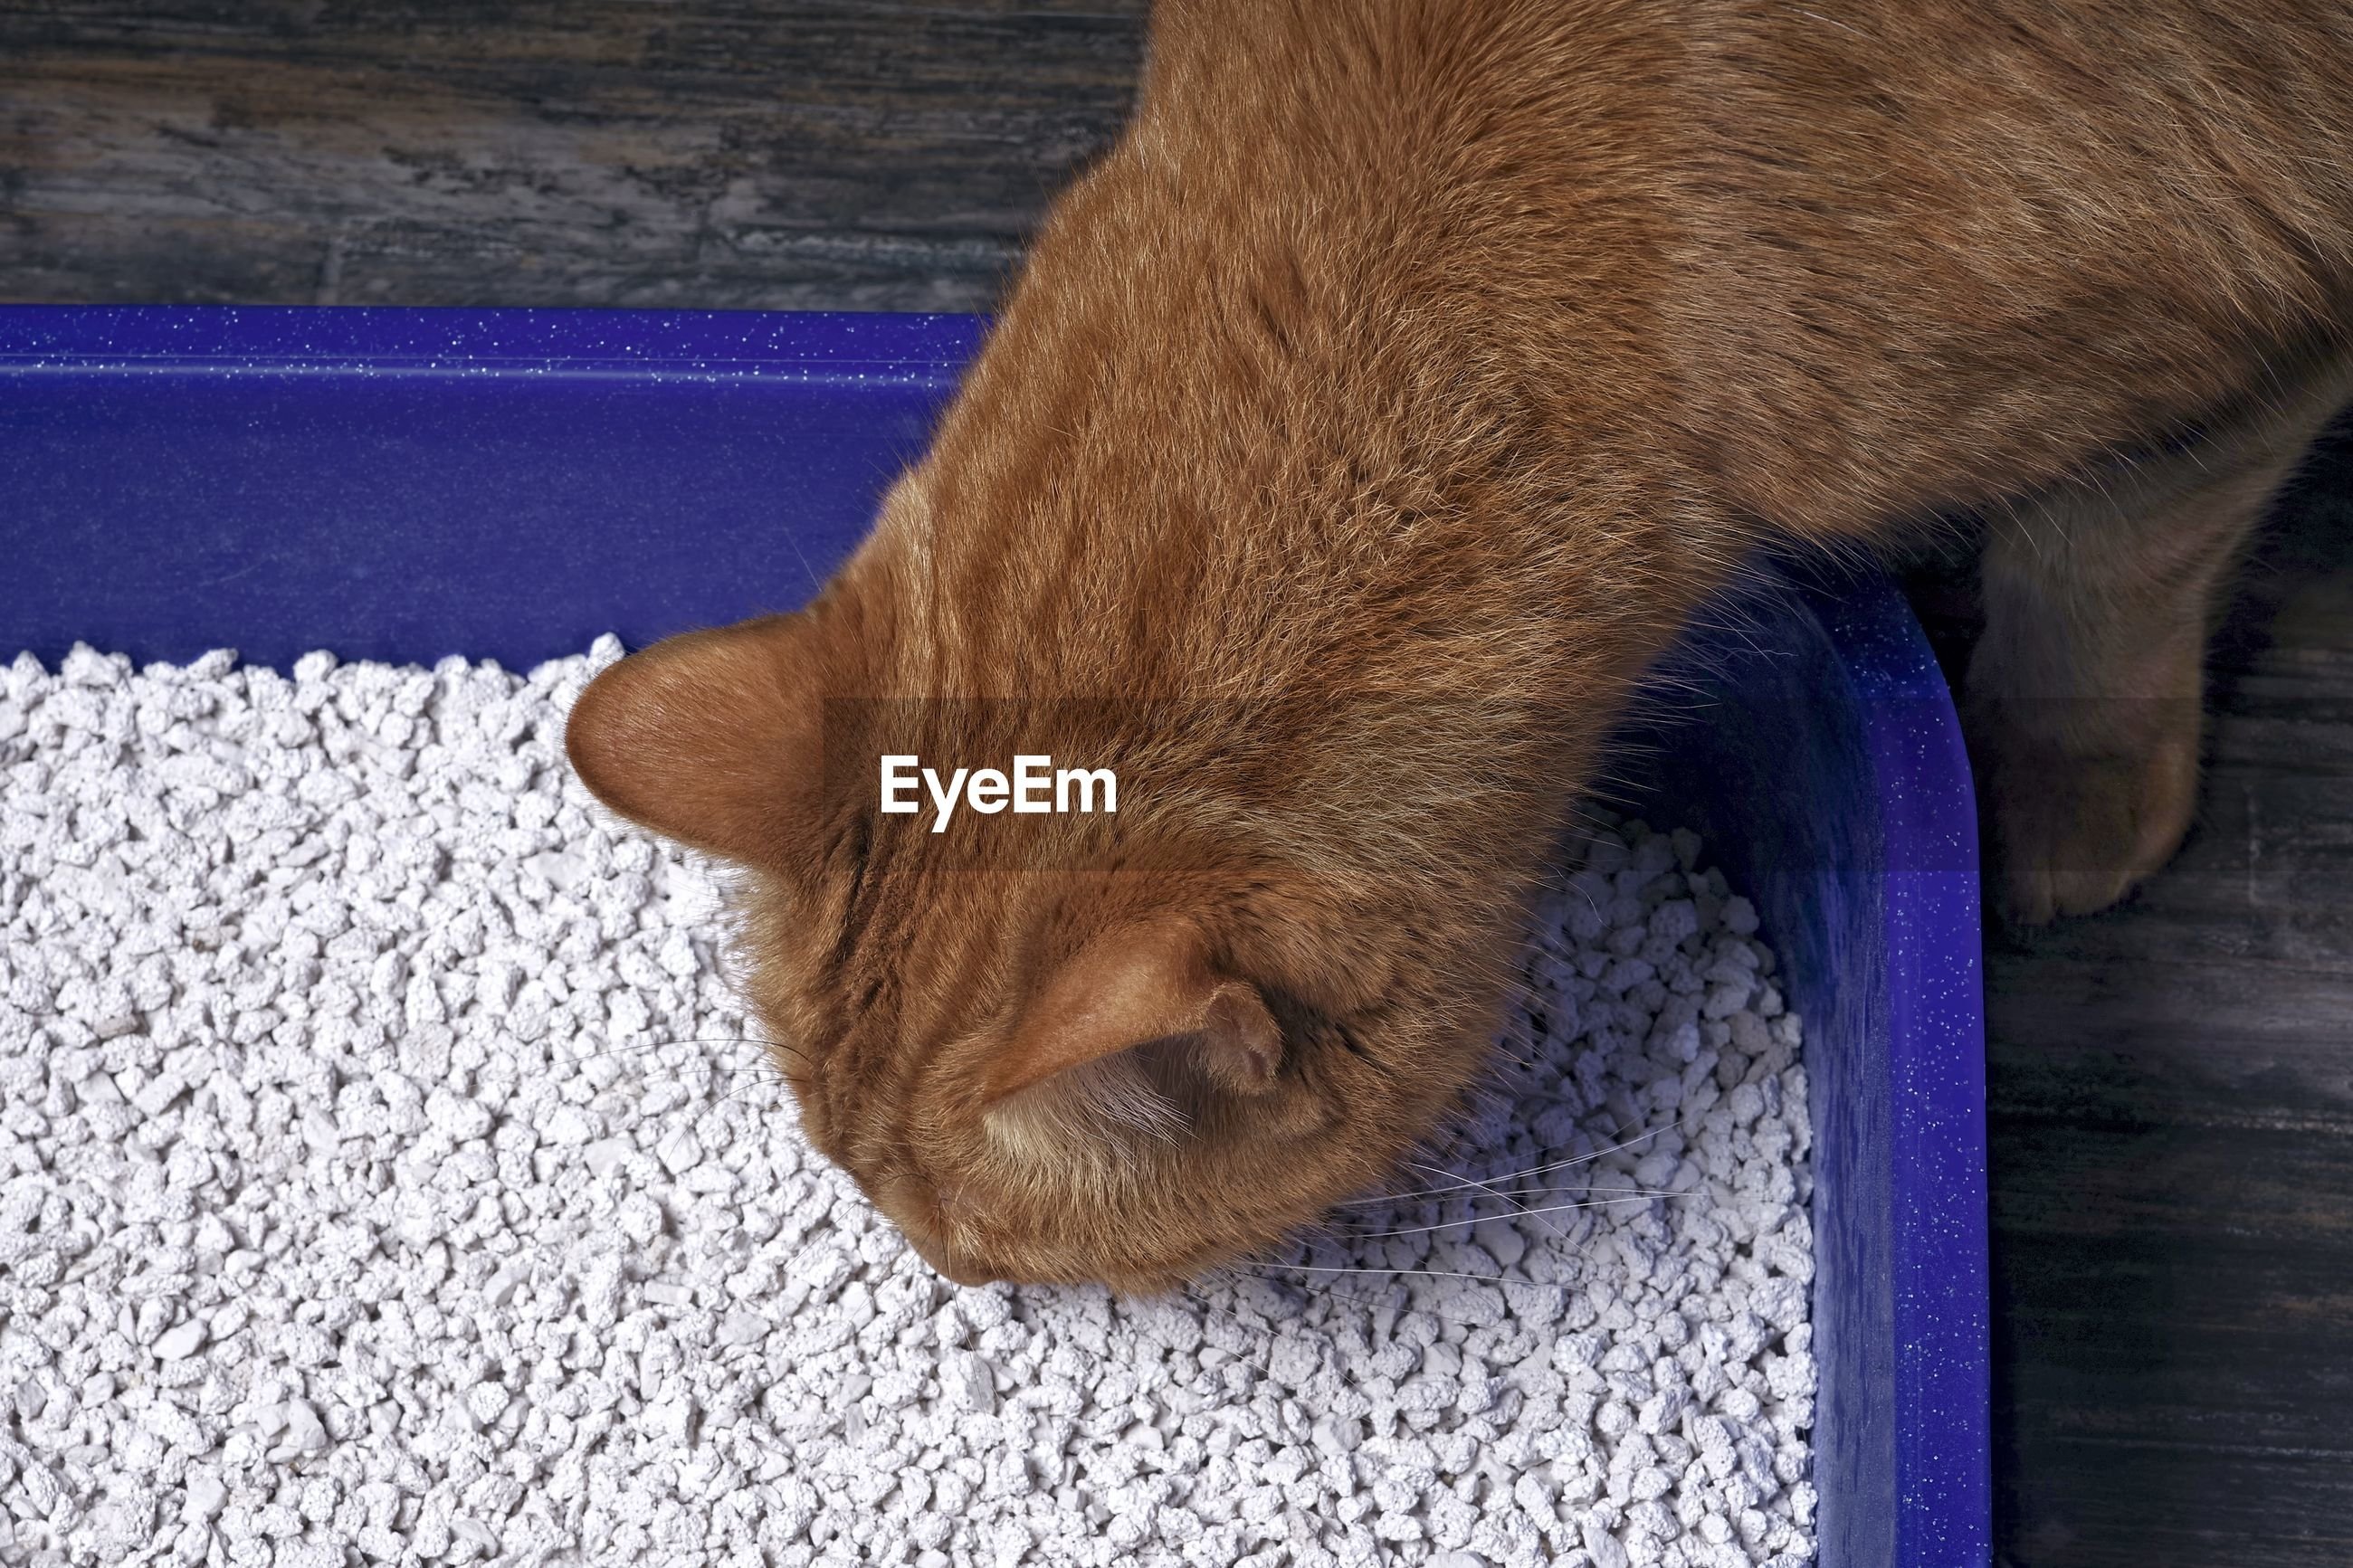 Close up of a tabby cat going into a blue litter box.